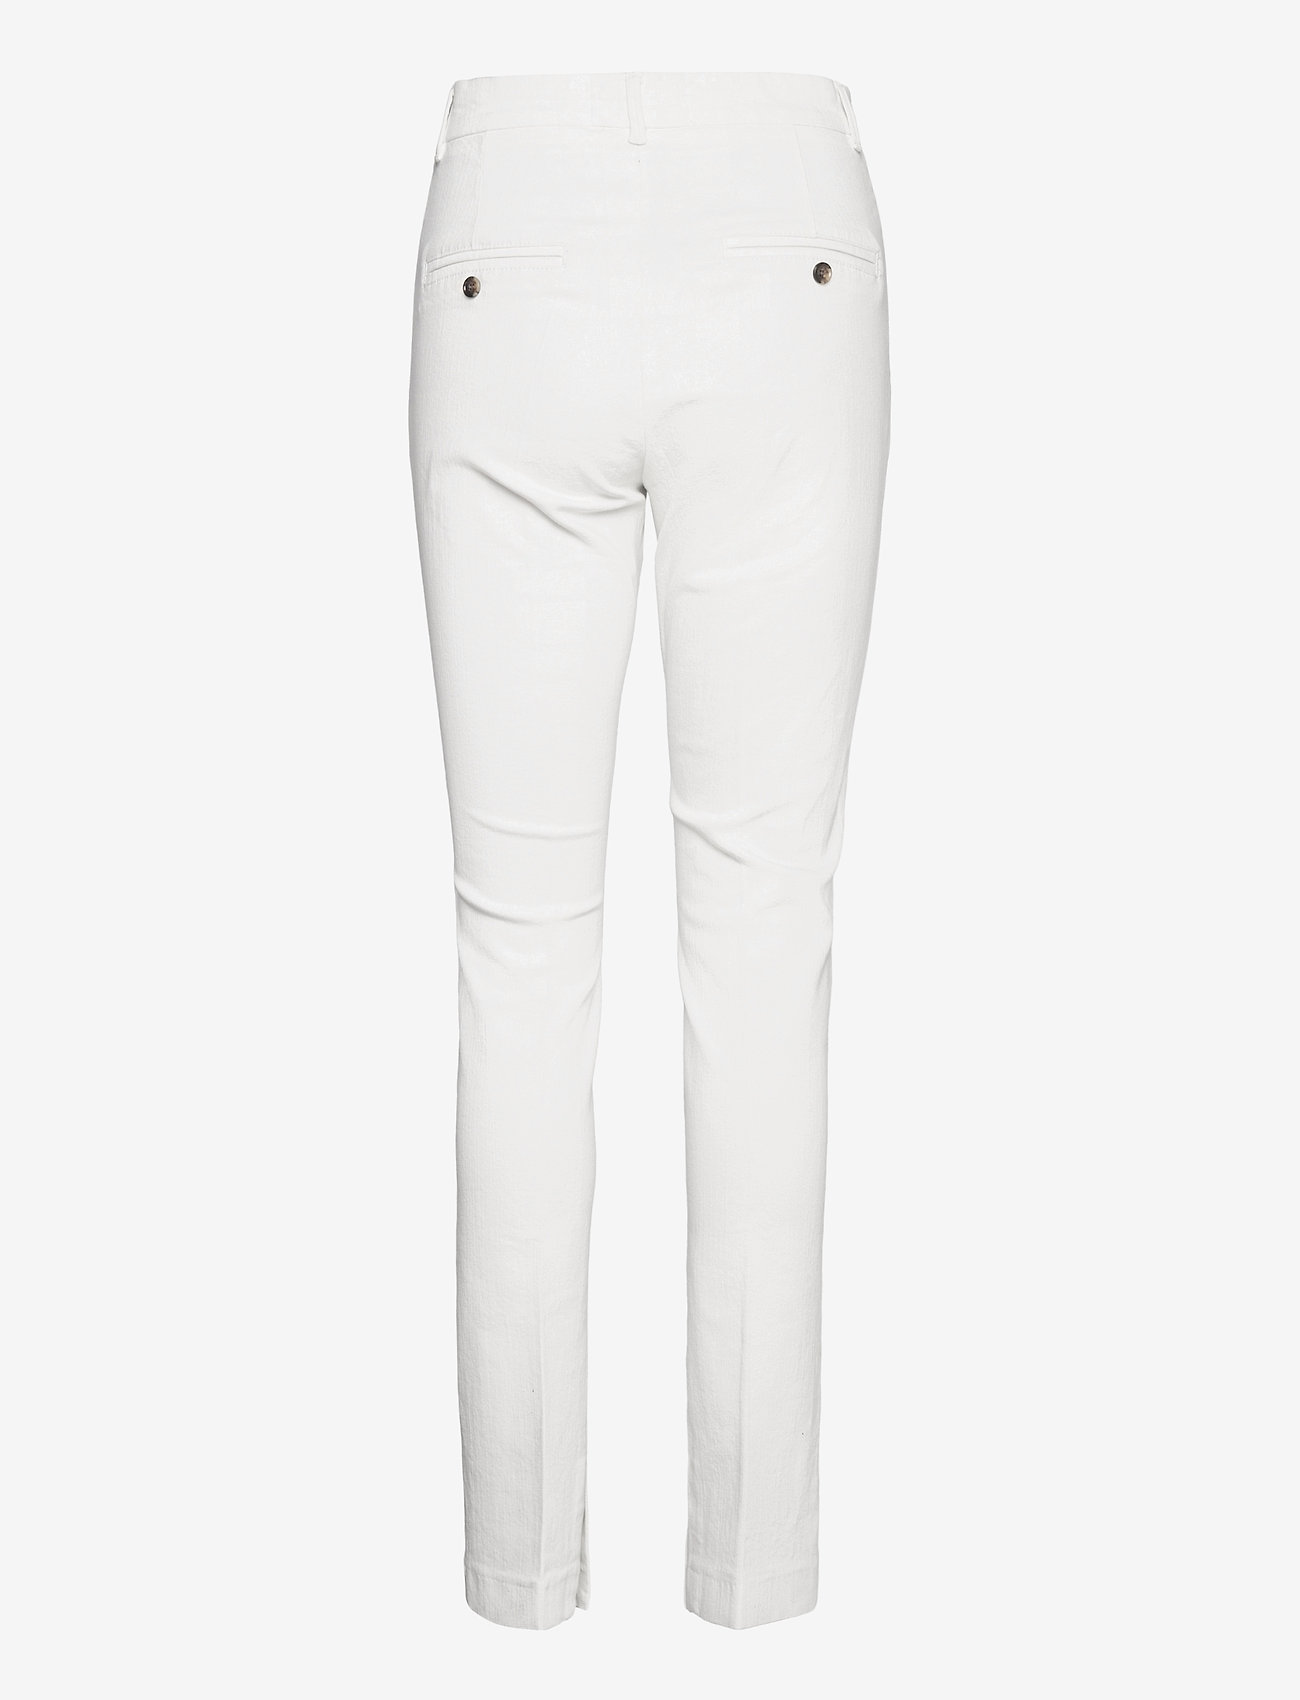 Tomorrow - Dylan tailor pant color - chinos - ecru - 1